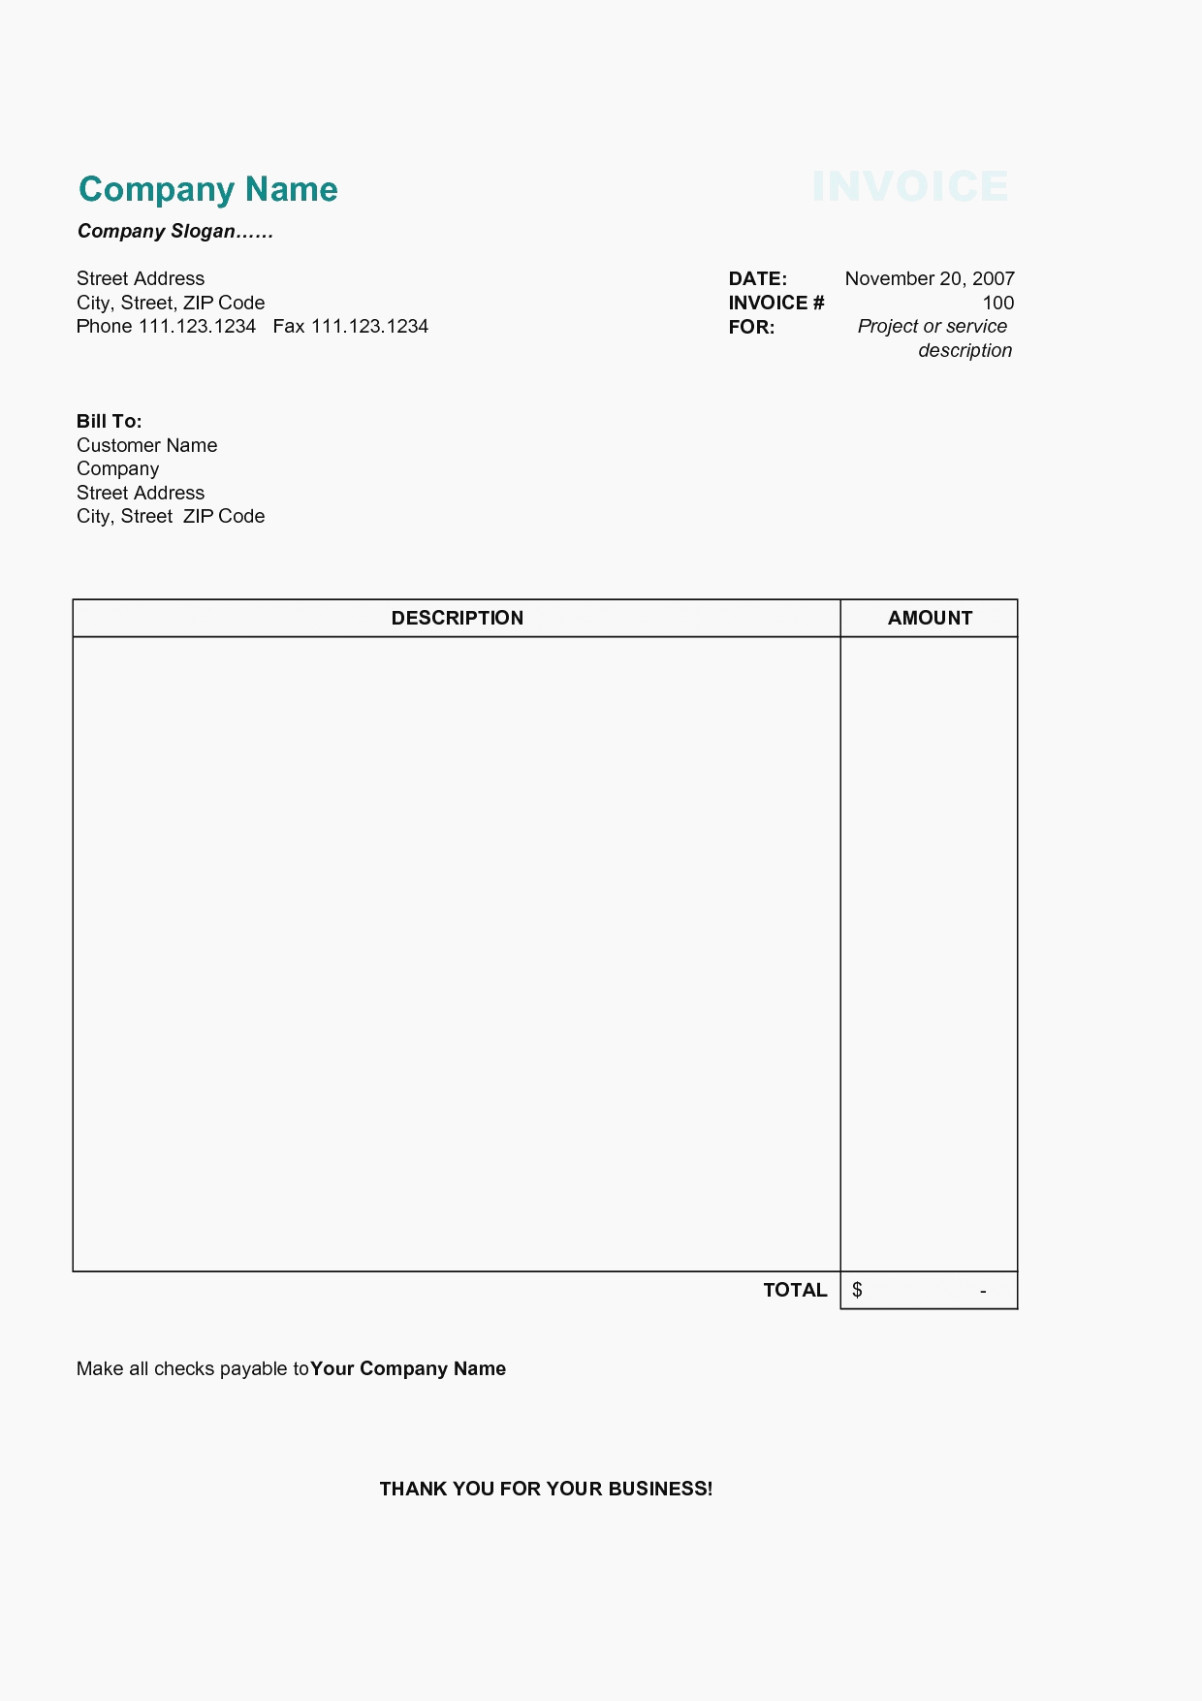 Notary Invoice Template Free Fresh 15 Things to Expect when